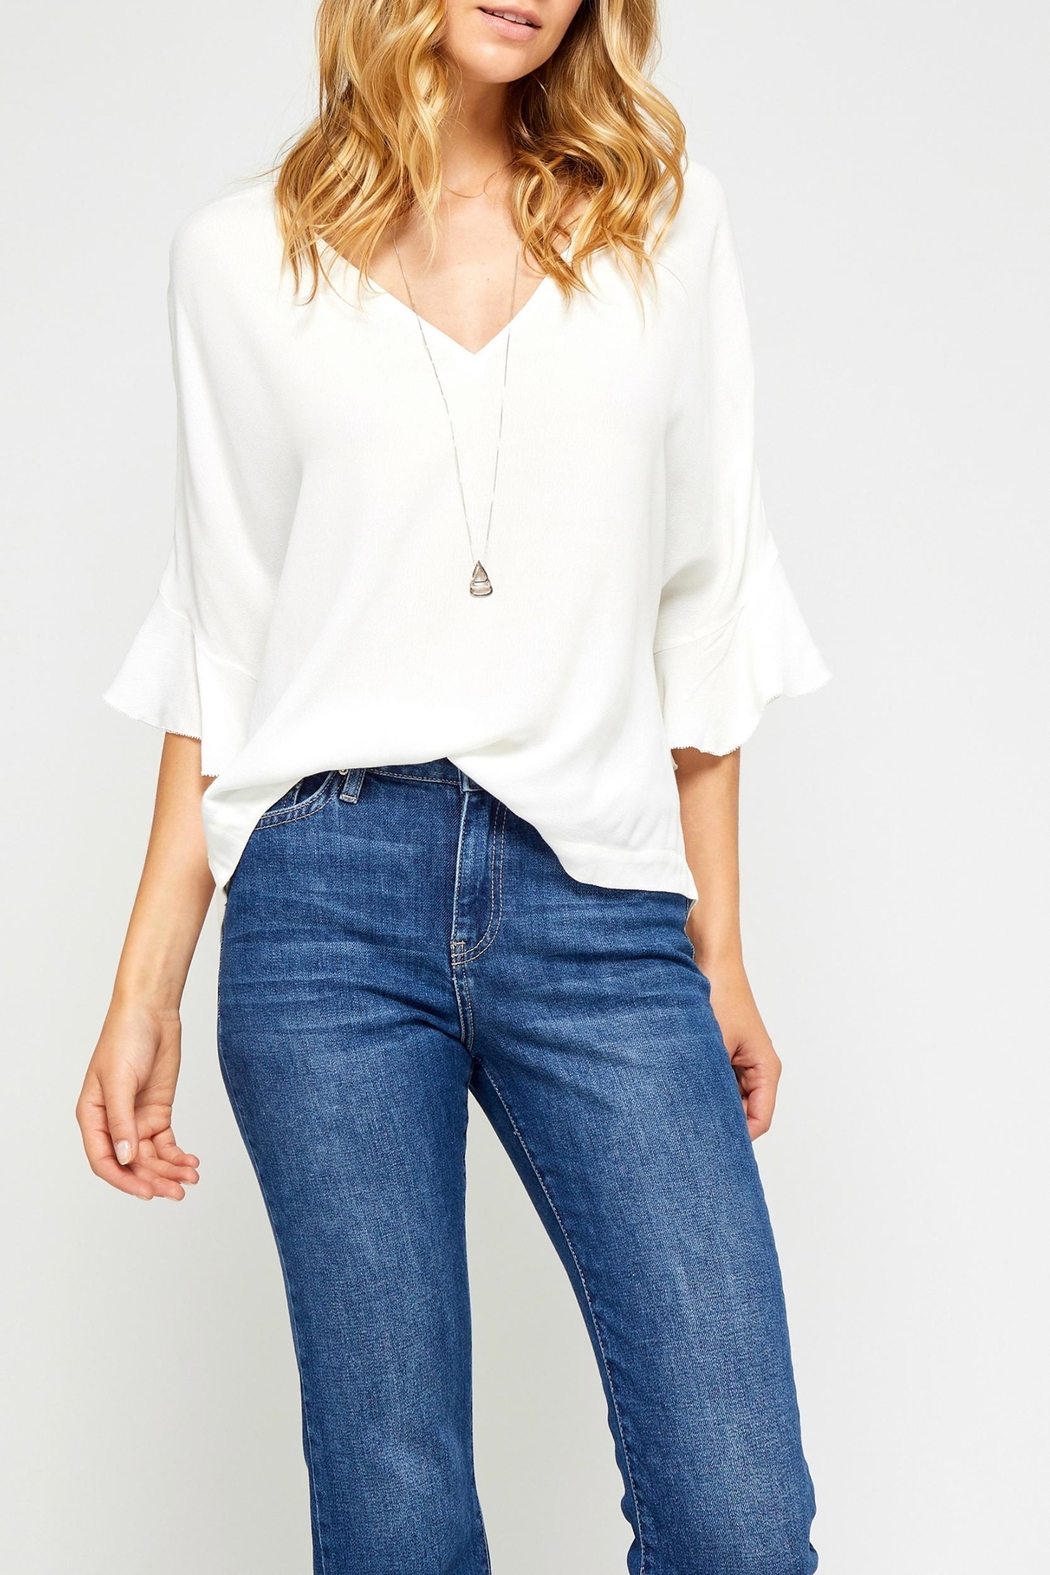 Gentle Fawn Ruffle Sleeve Top - Main Image